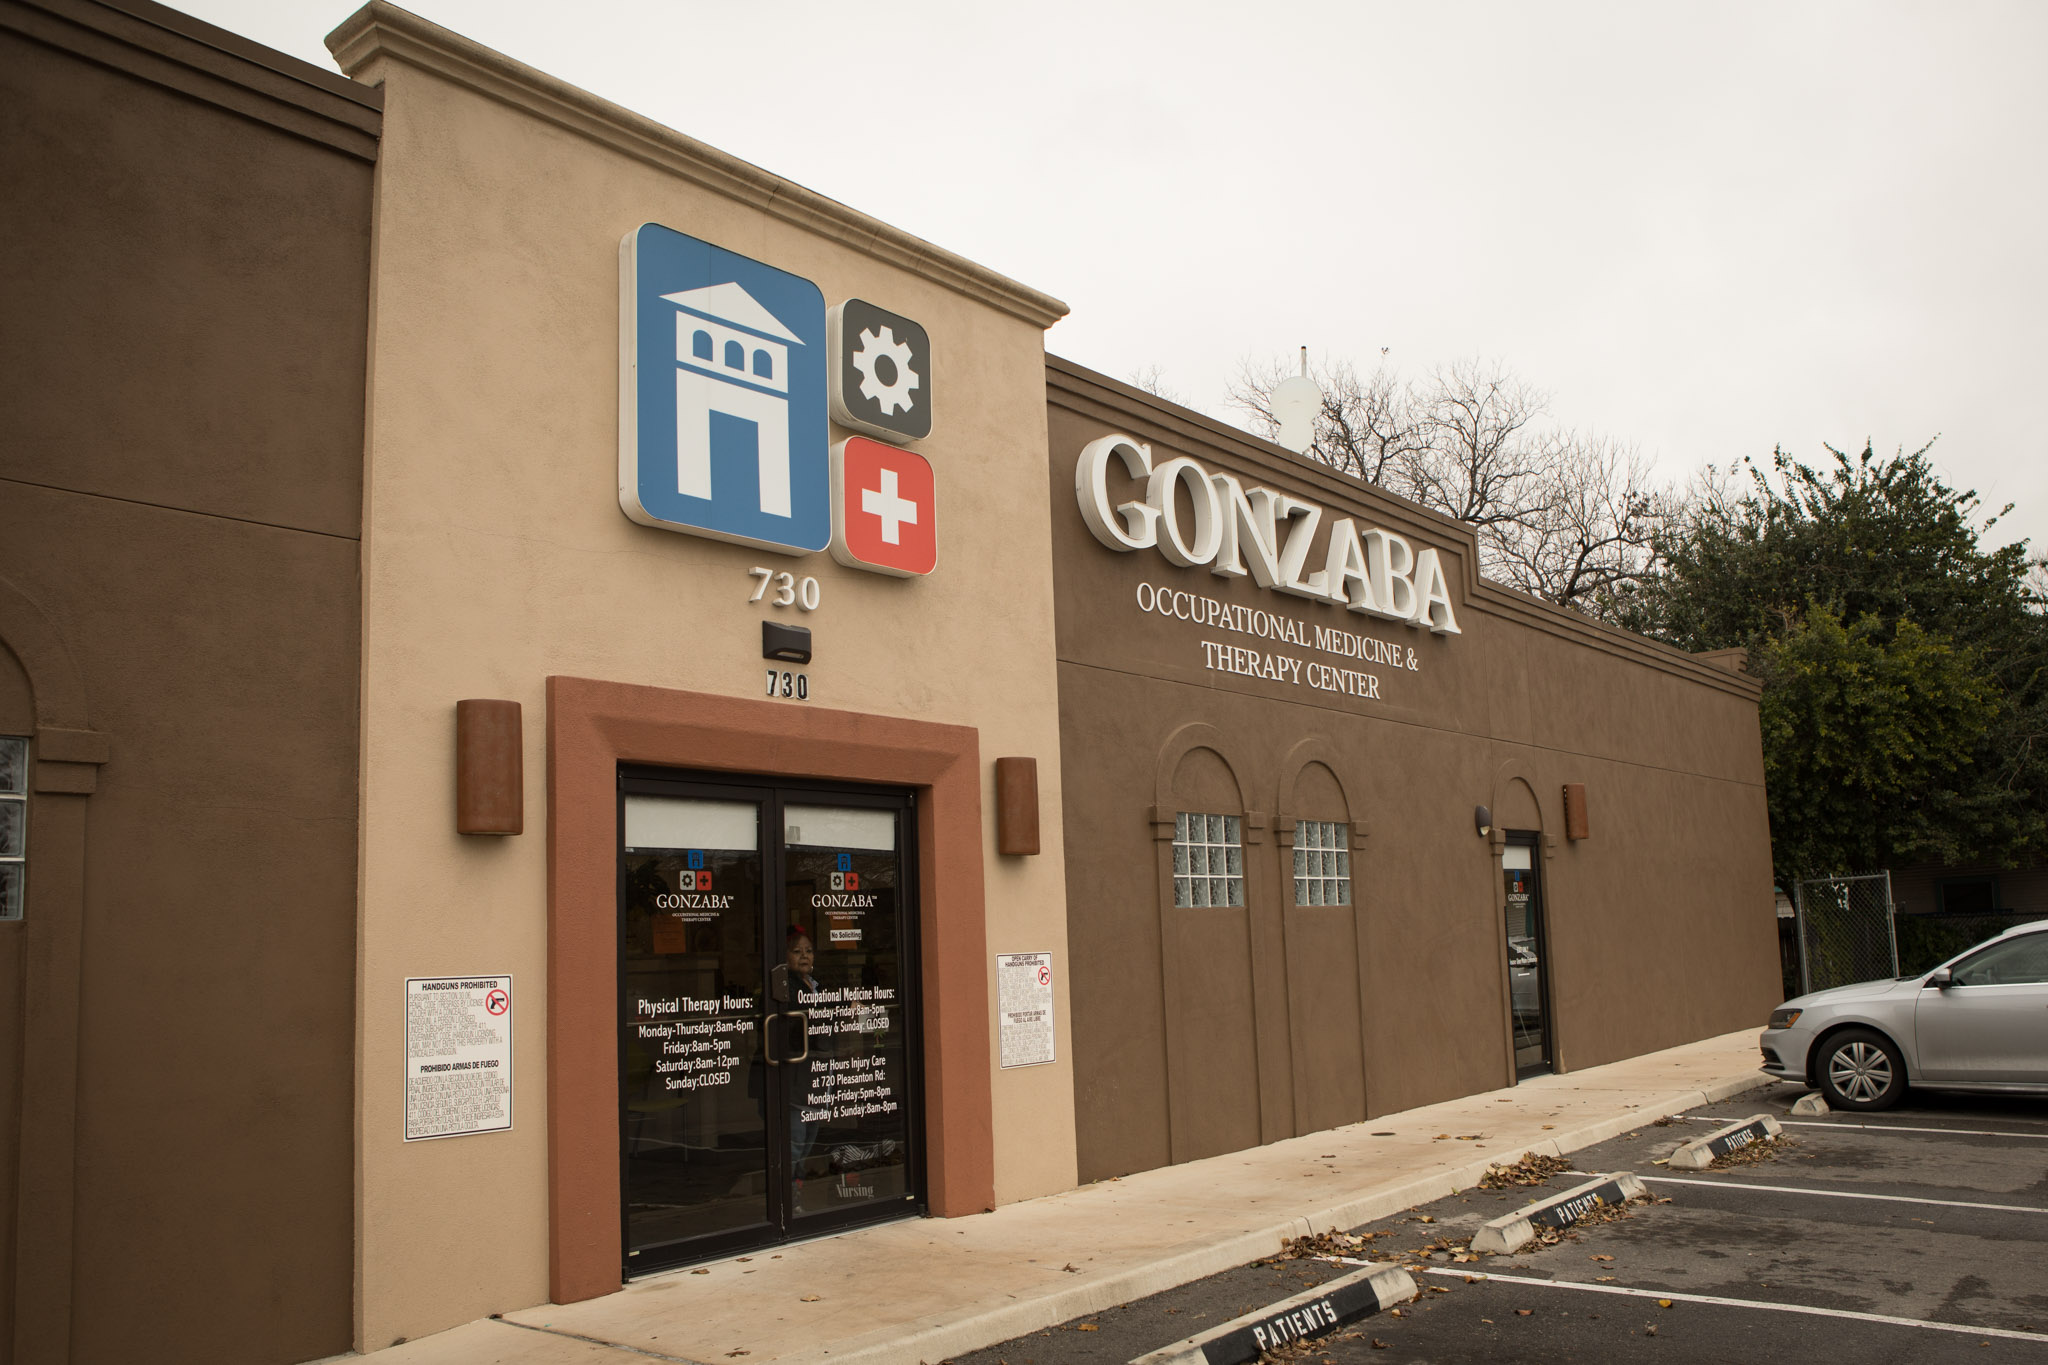 Gonzaba Occupational Medicine & Therapy Center is located at 730 Pleasanton Rd.